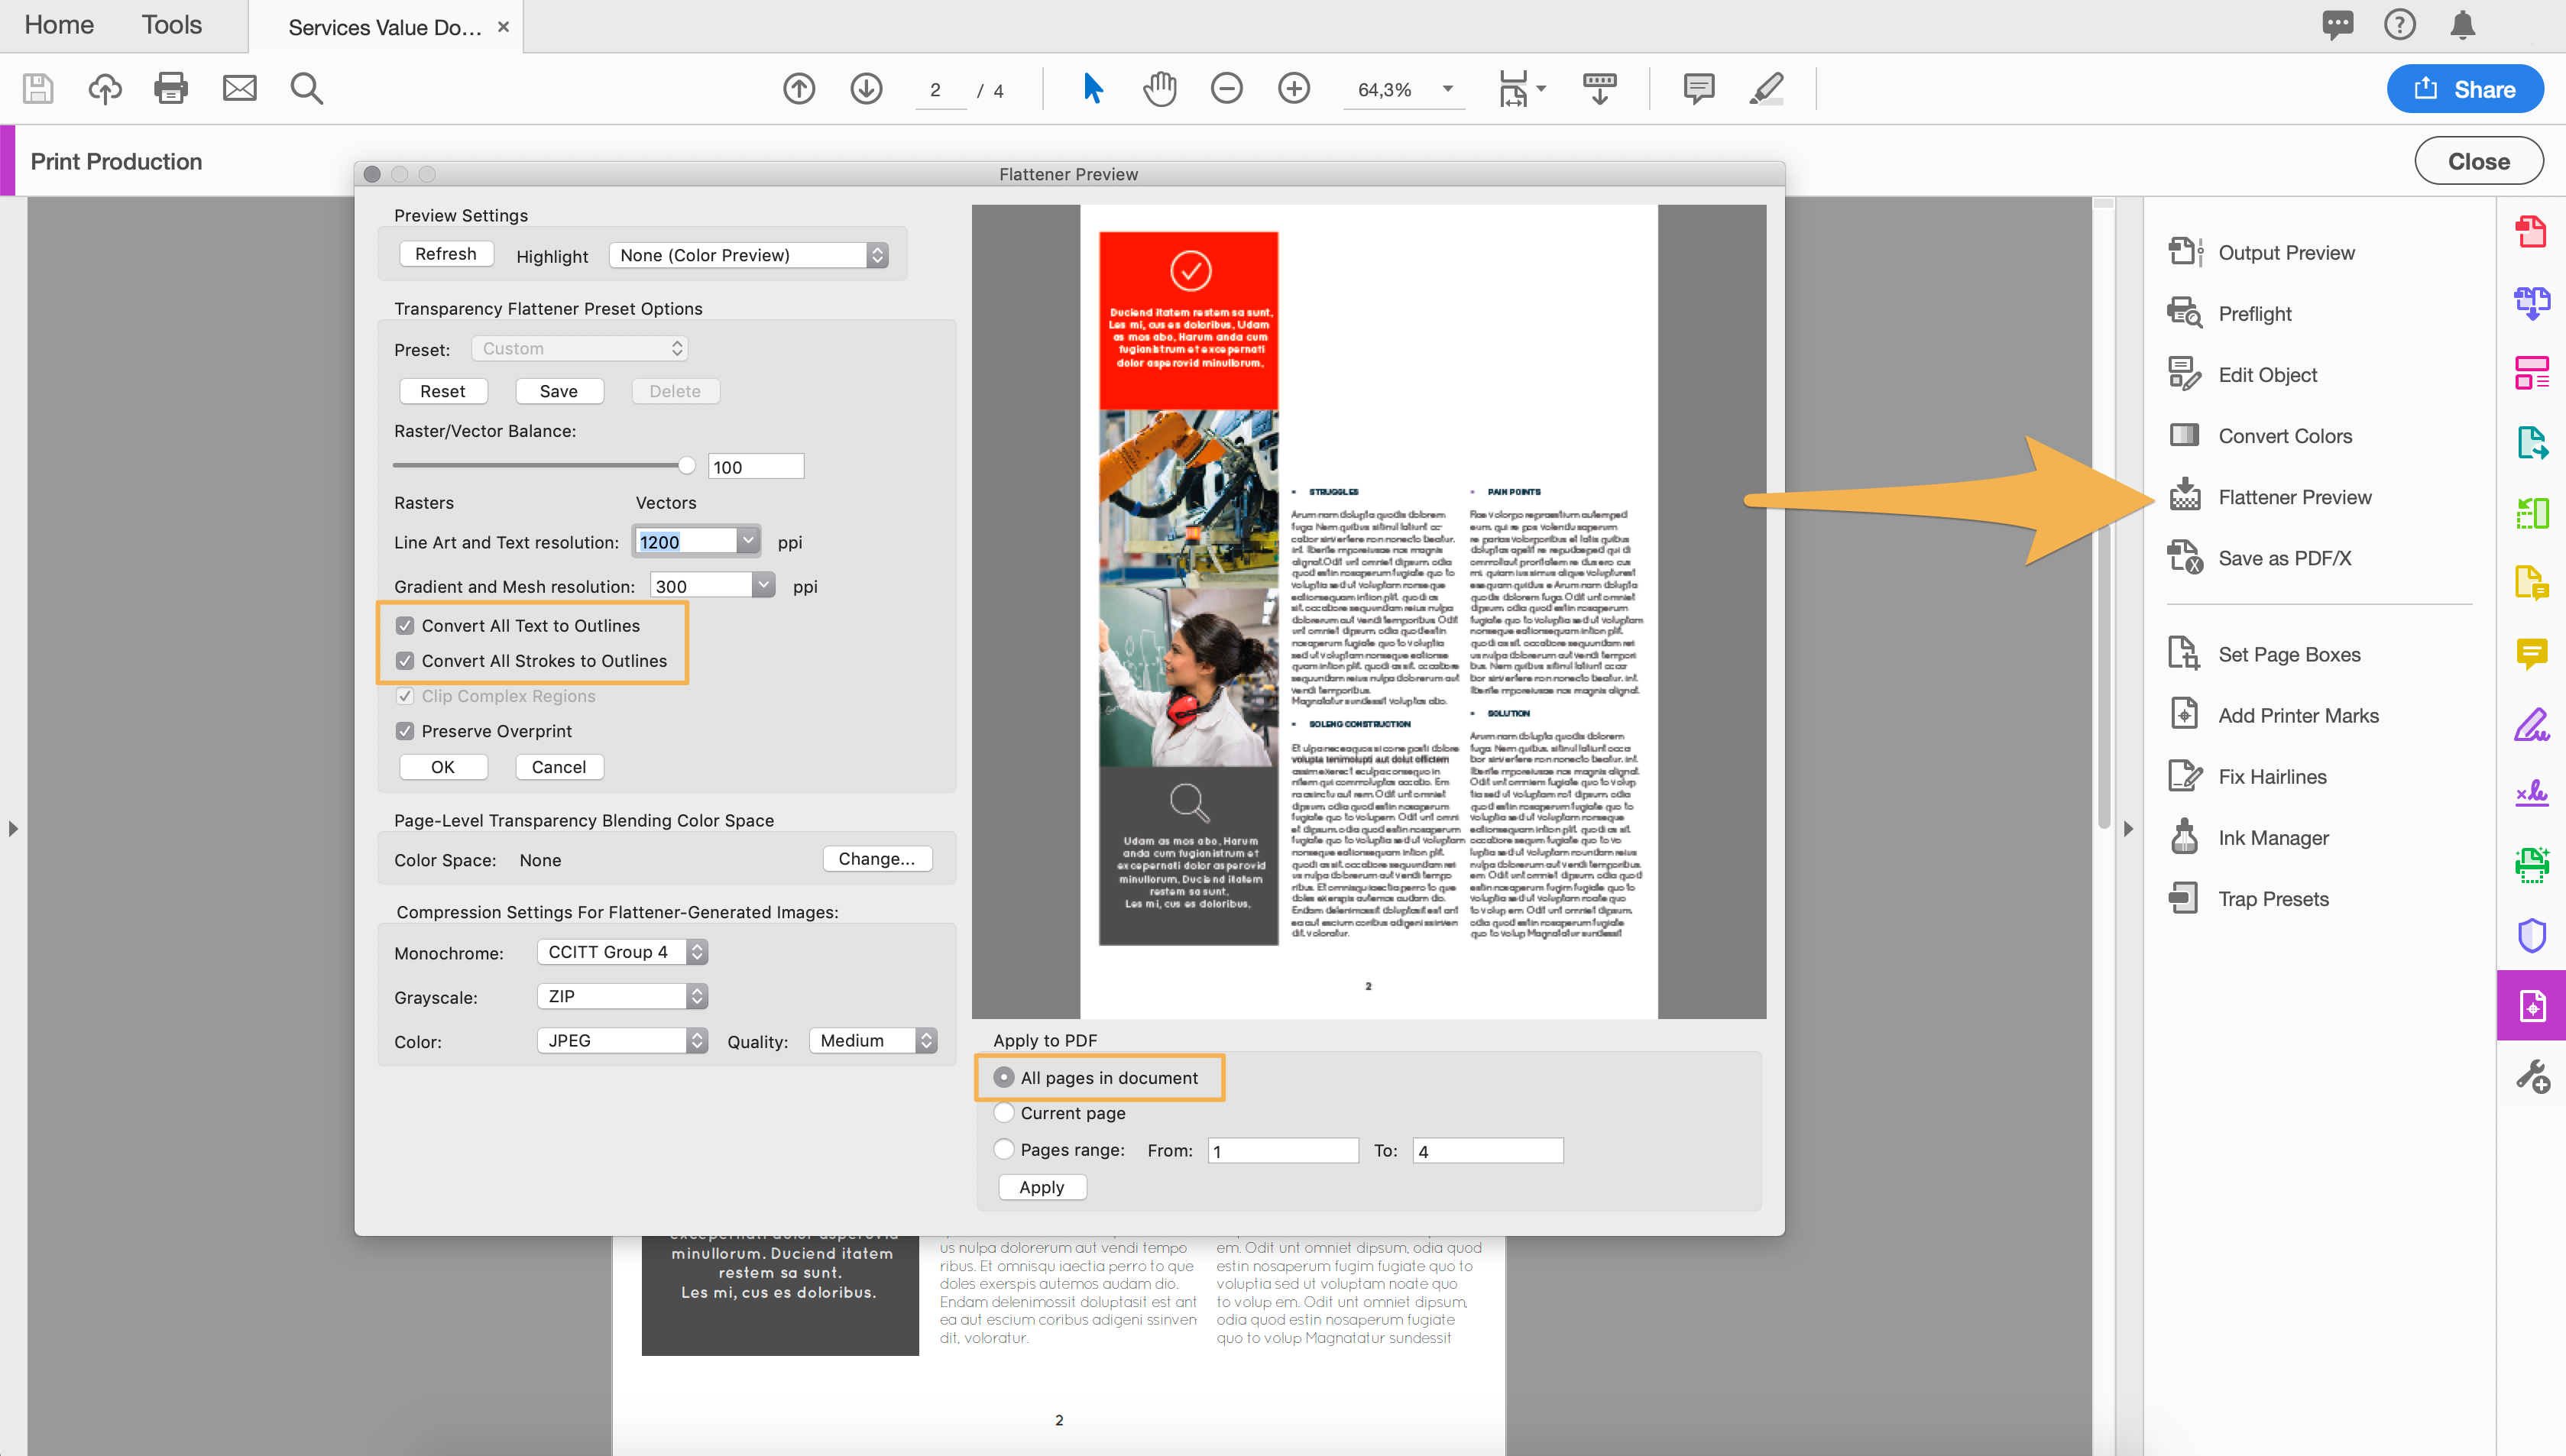 Best practices for uploading PDFs and resolving common